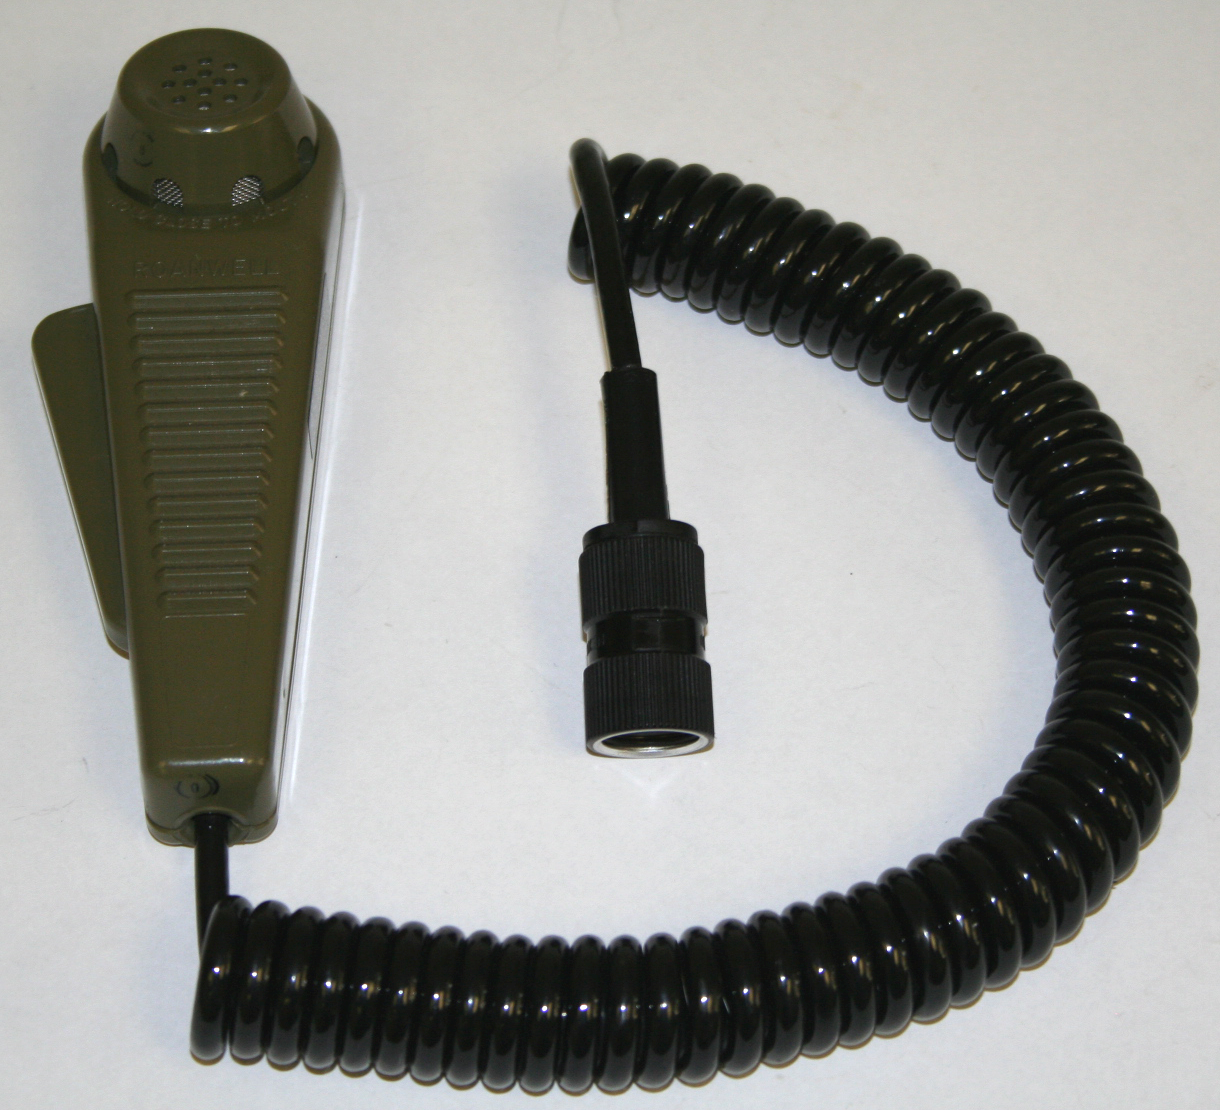 Type 519 Microphone